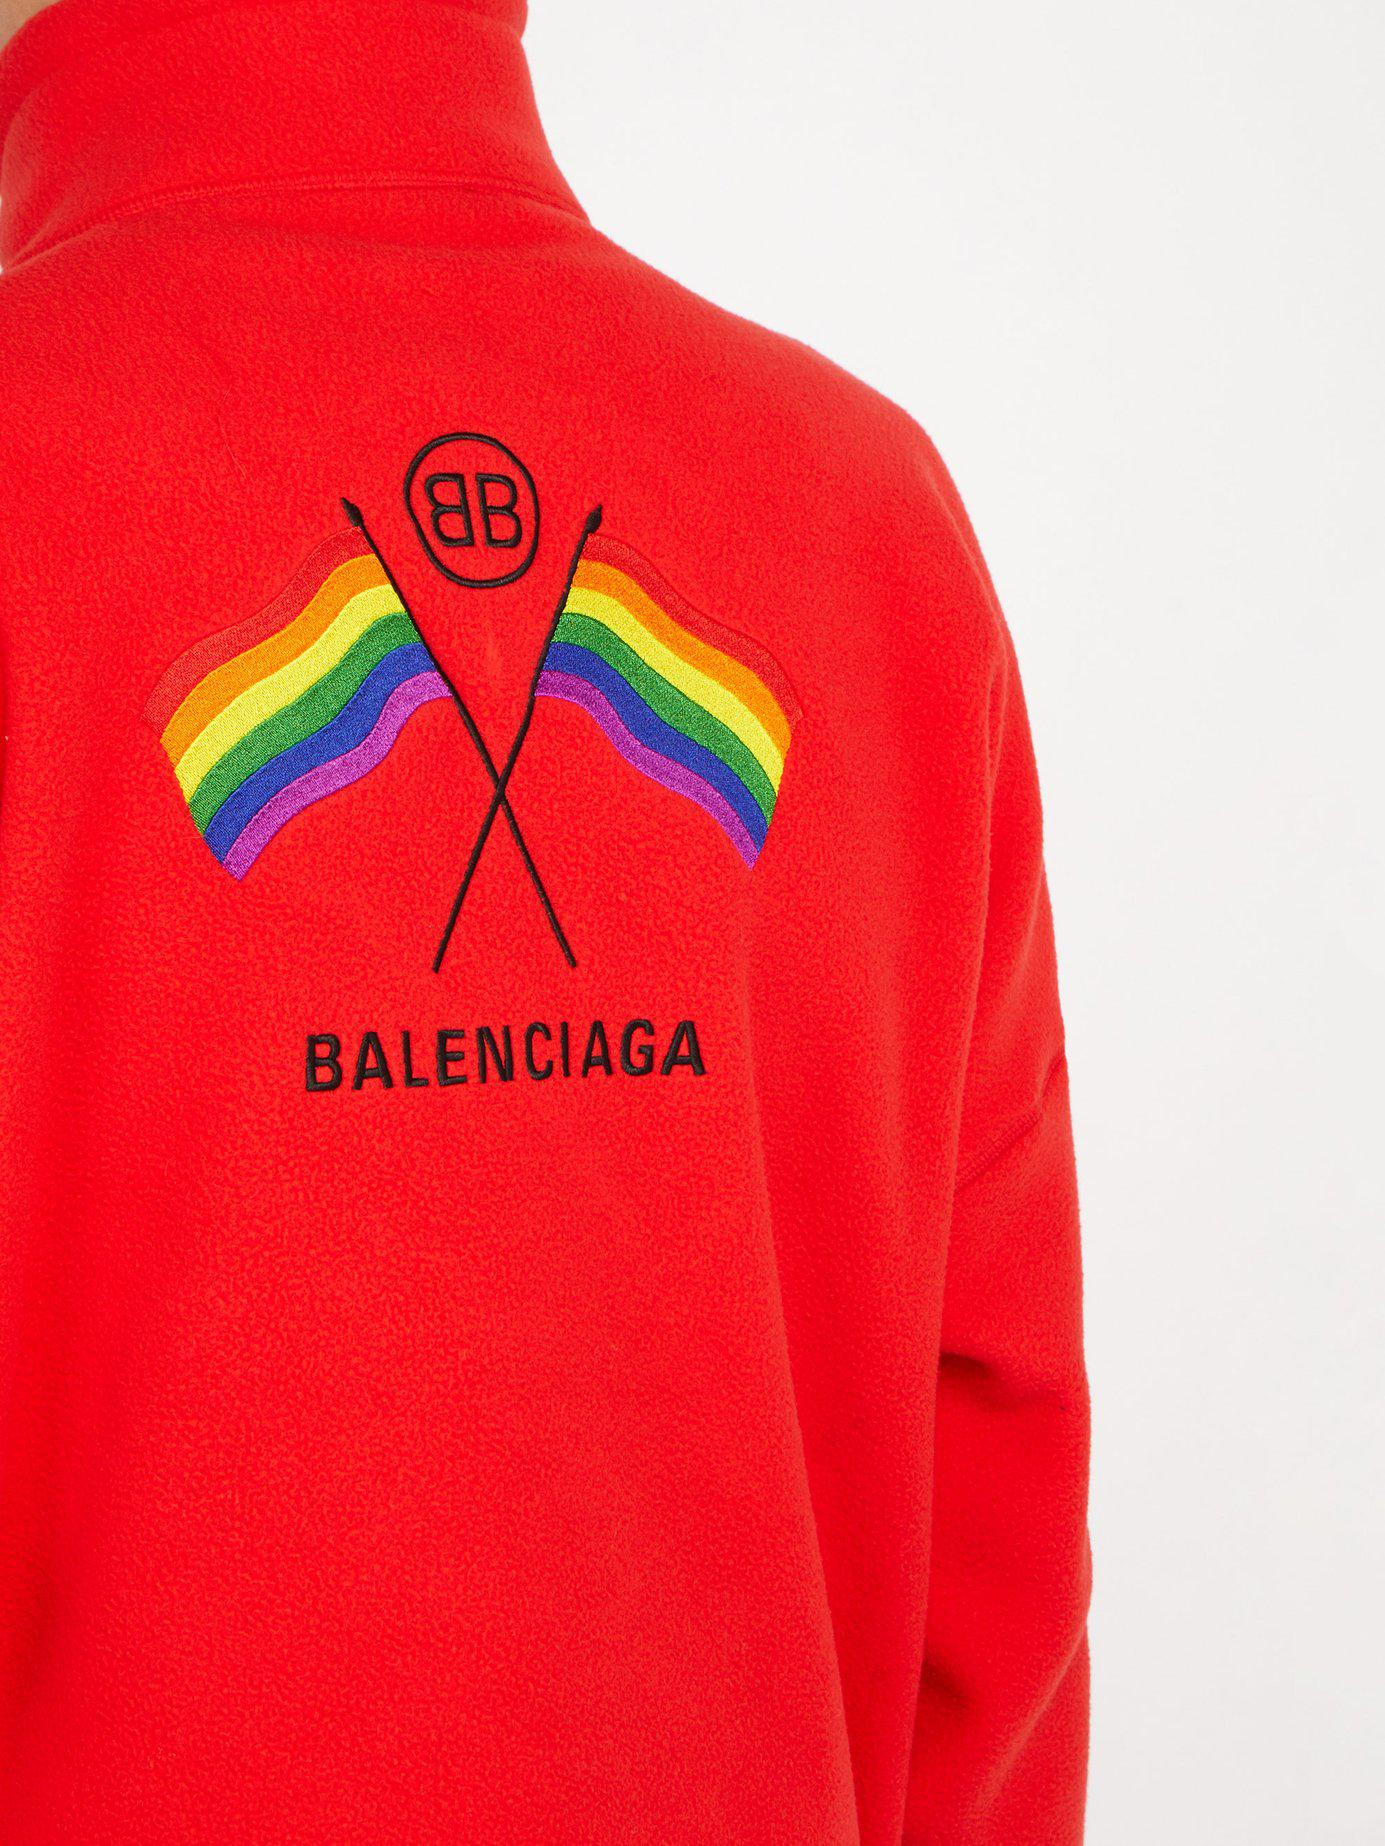 90af751a Tap to visit site. Balenciaga - Lgbtq+ Flag Embroidered Zip Through Track  Top ...